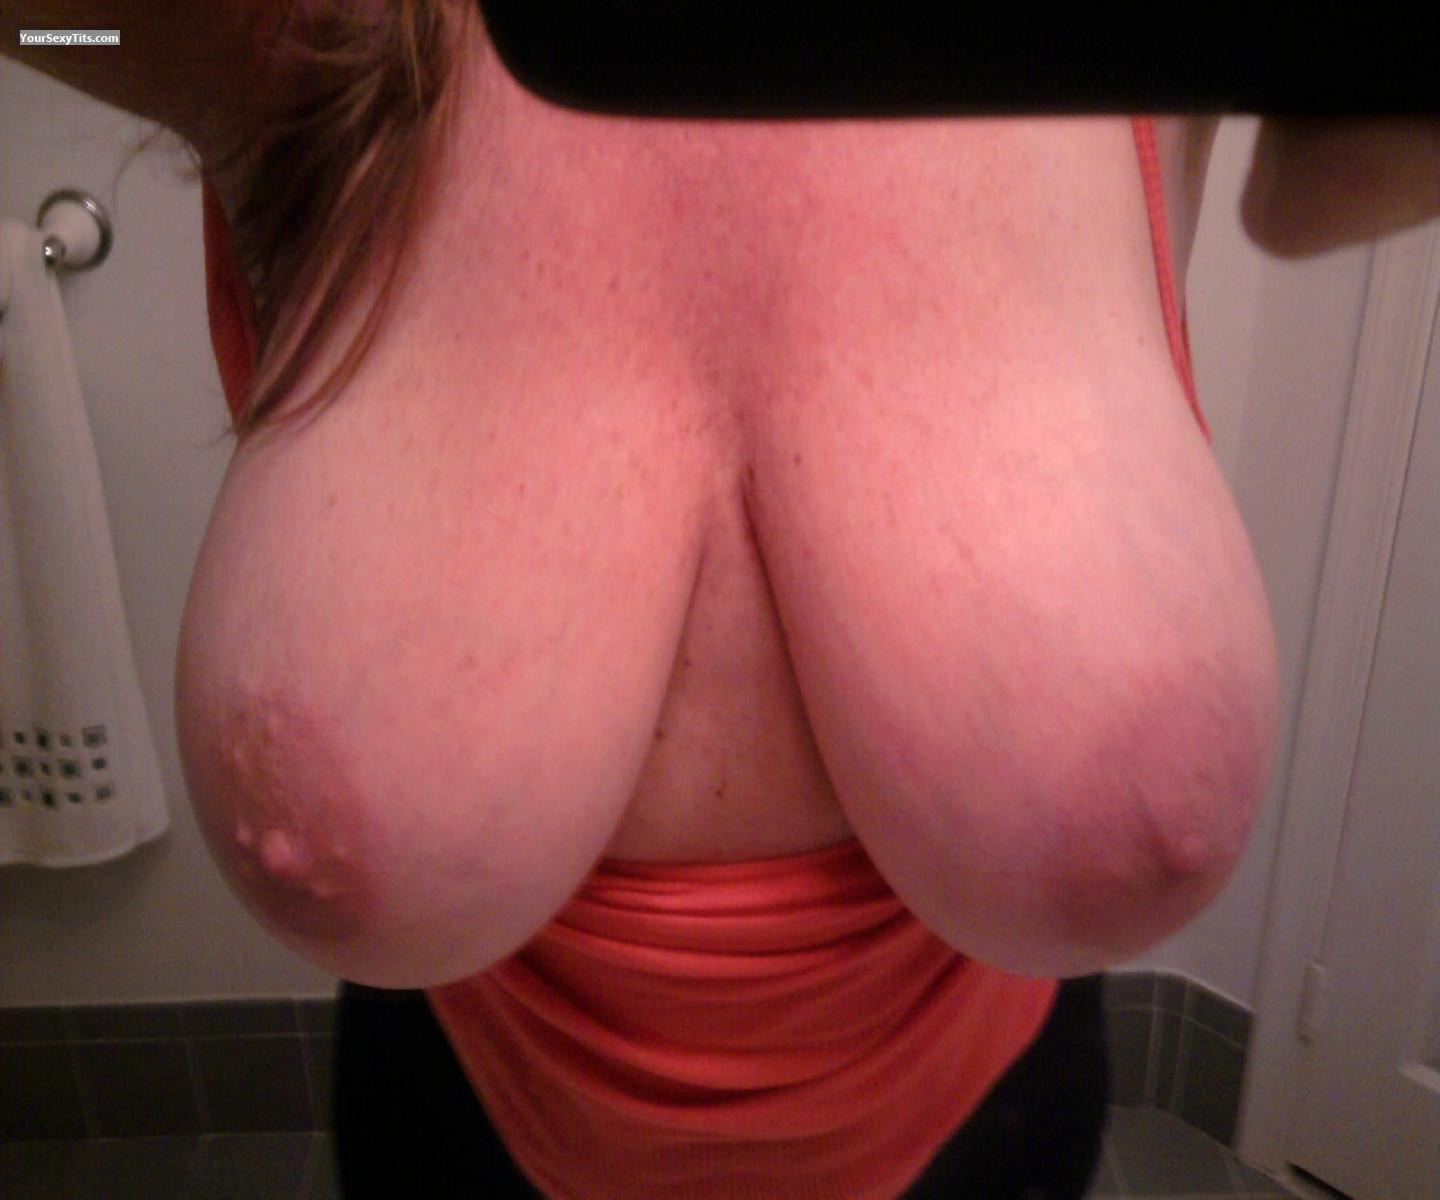 My Very big Tits Selfie by Paula